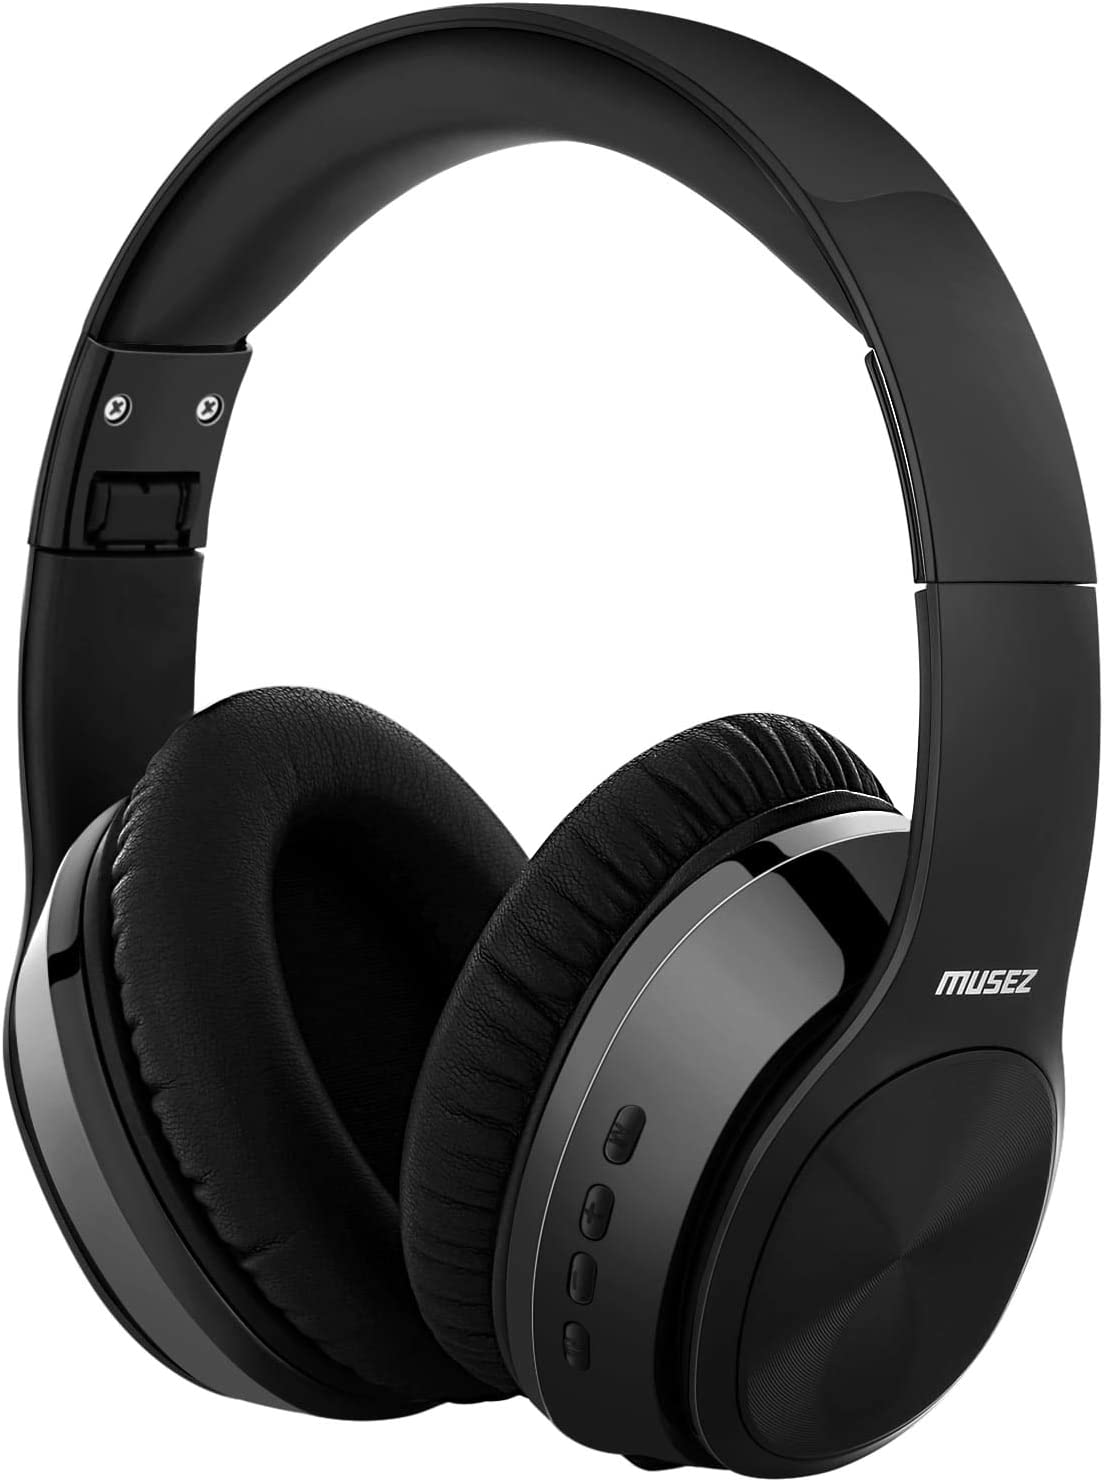 Headphones Wireless Bluetooth, Bluetooth Headphones Over Ear, Wireless Bluetooth Headphones, Microphone, HiFi deep bass, for Phones/tv/Computer, Free case for Travel/Workout/Home Office (Black)